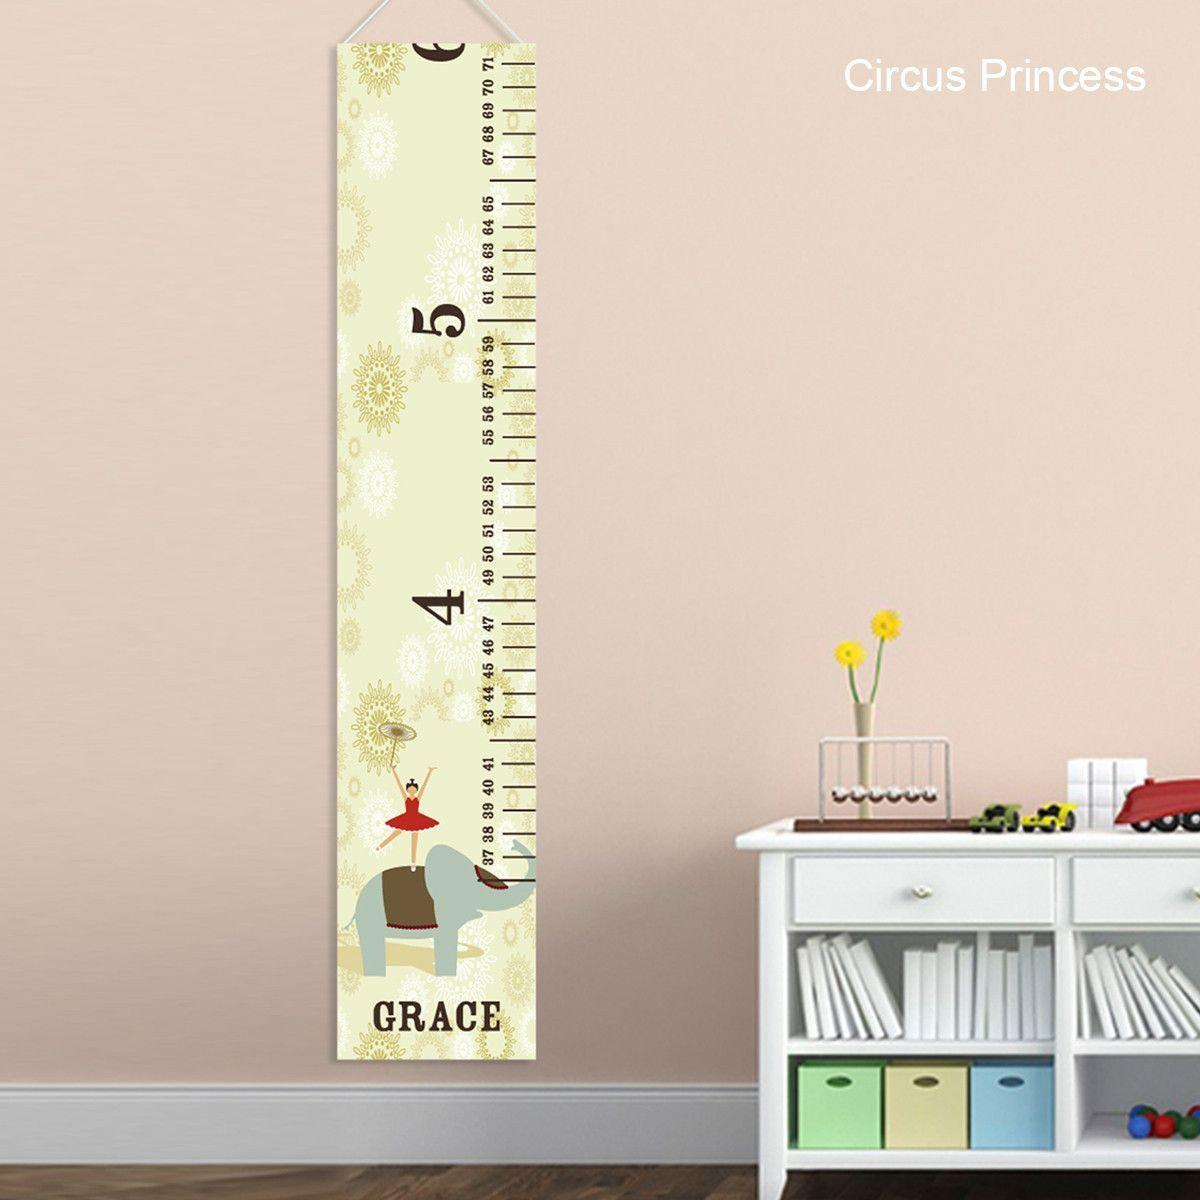 Height Charts for Girls - Growth Chart for Girls